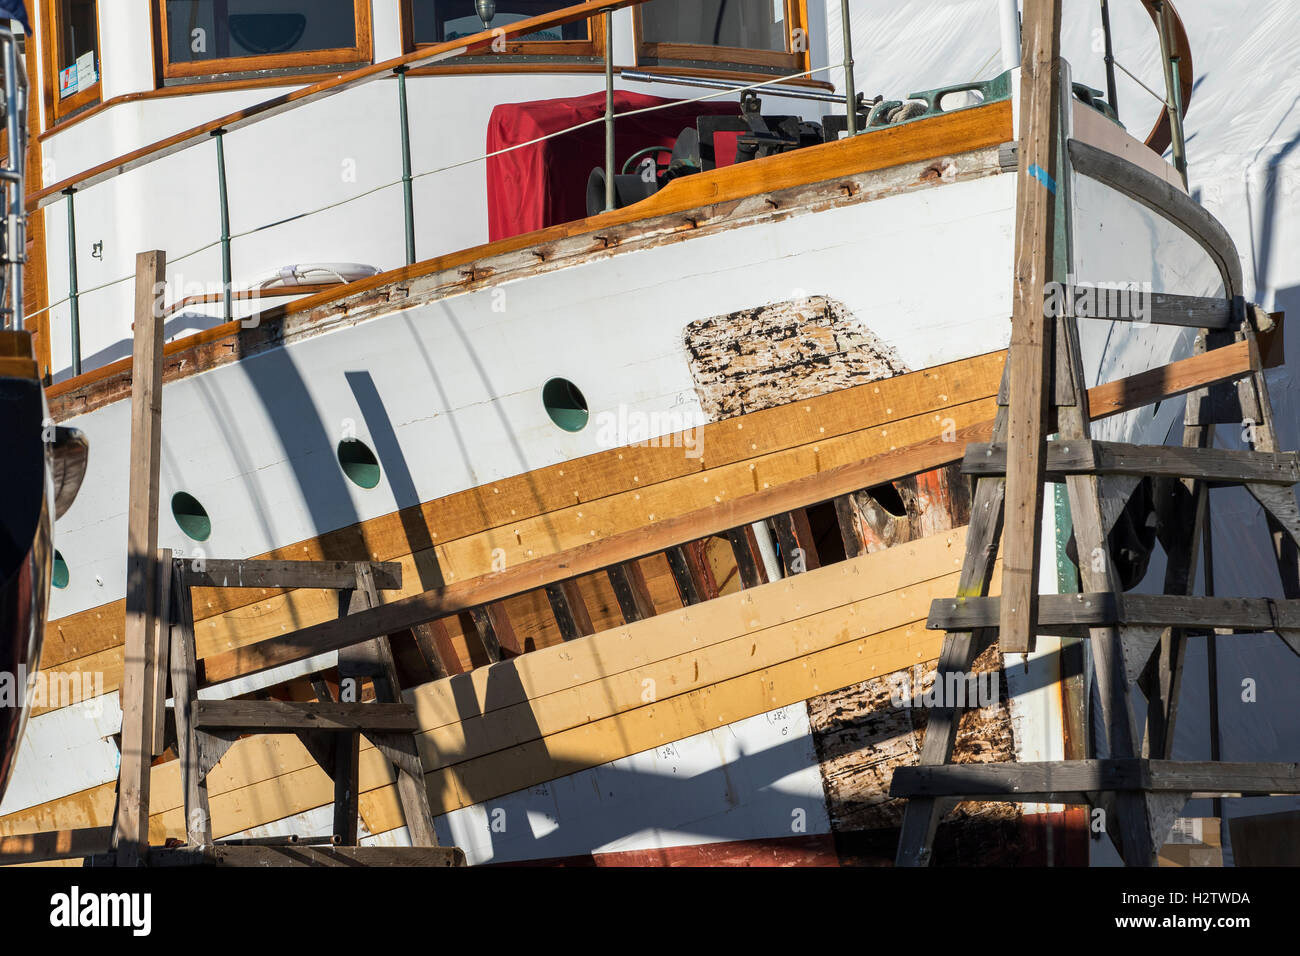 Wooden boat repair at dry dock by shipwright in Port Townsend boat yard. - Stock Image